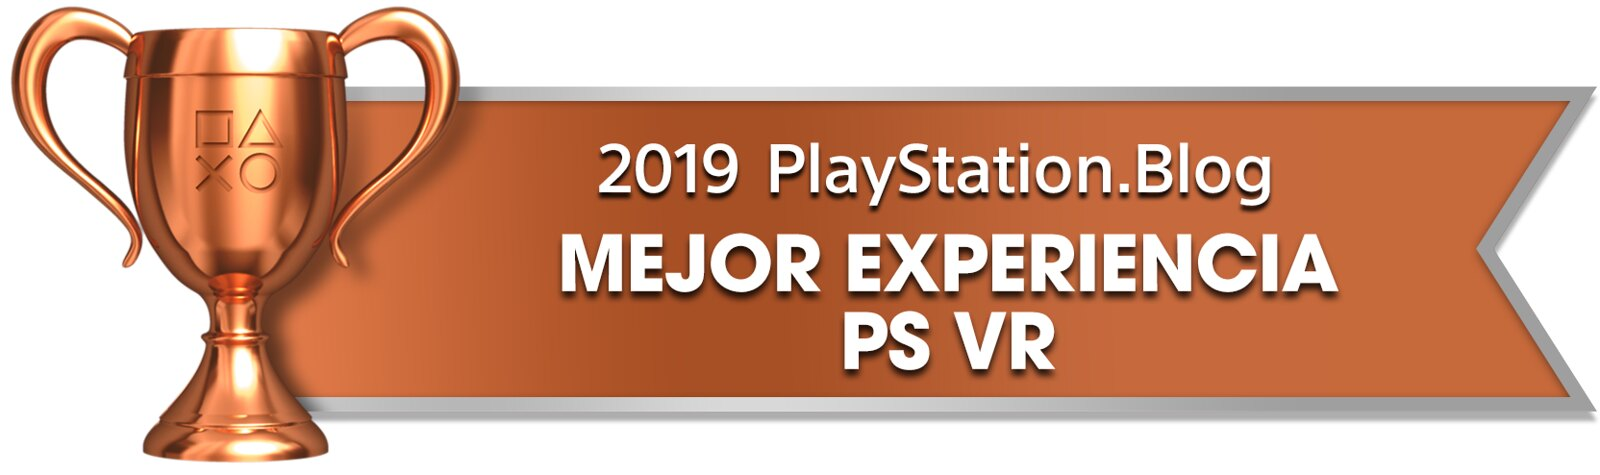 PS Blog Game of the Year 2019 - Best PS VR Experience - 4 - Bronze